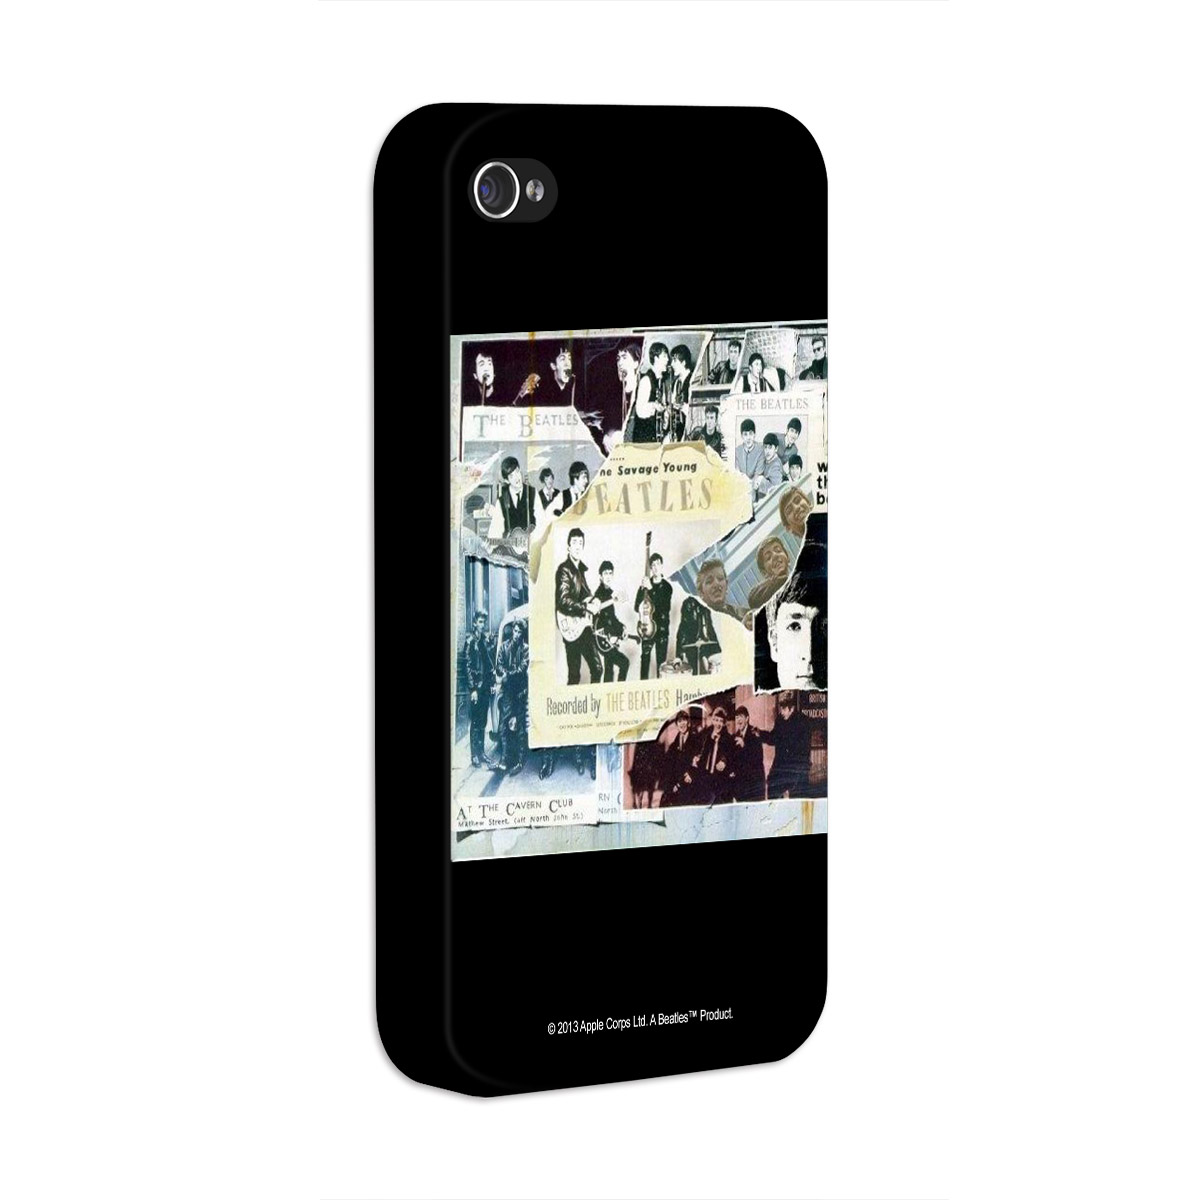 Capa de iPhone 4/4S The Beatles Anthology I